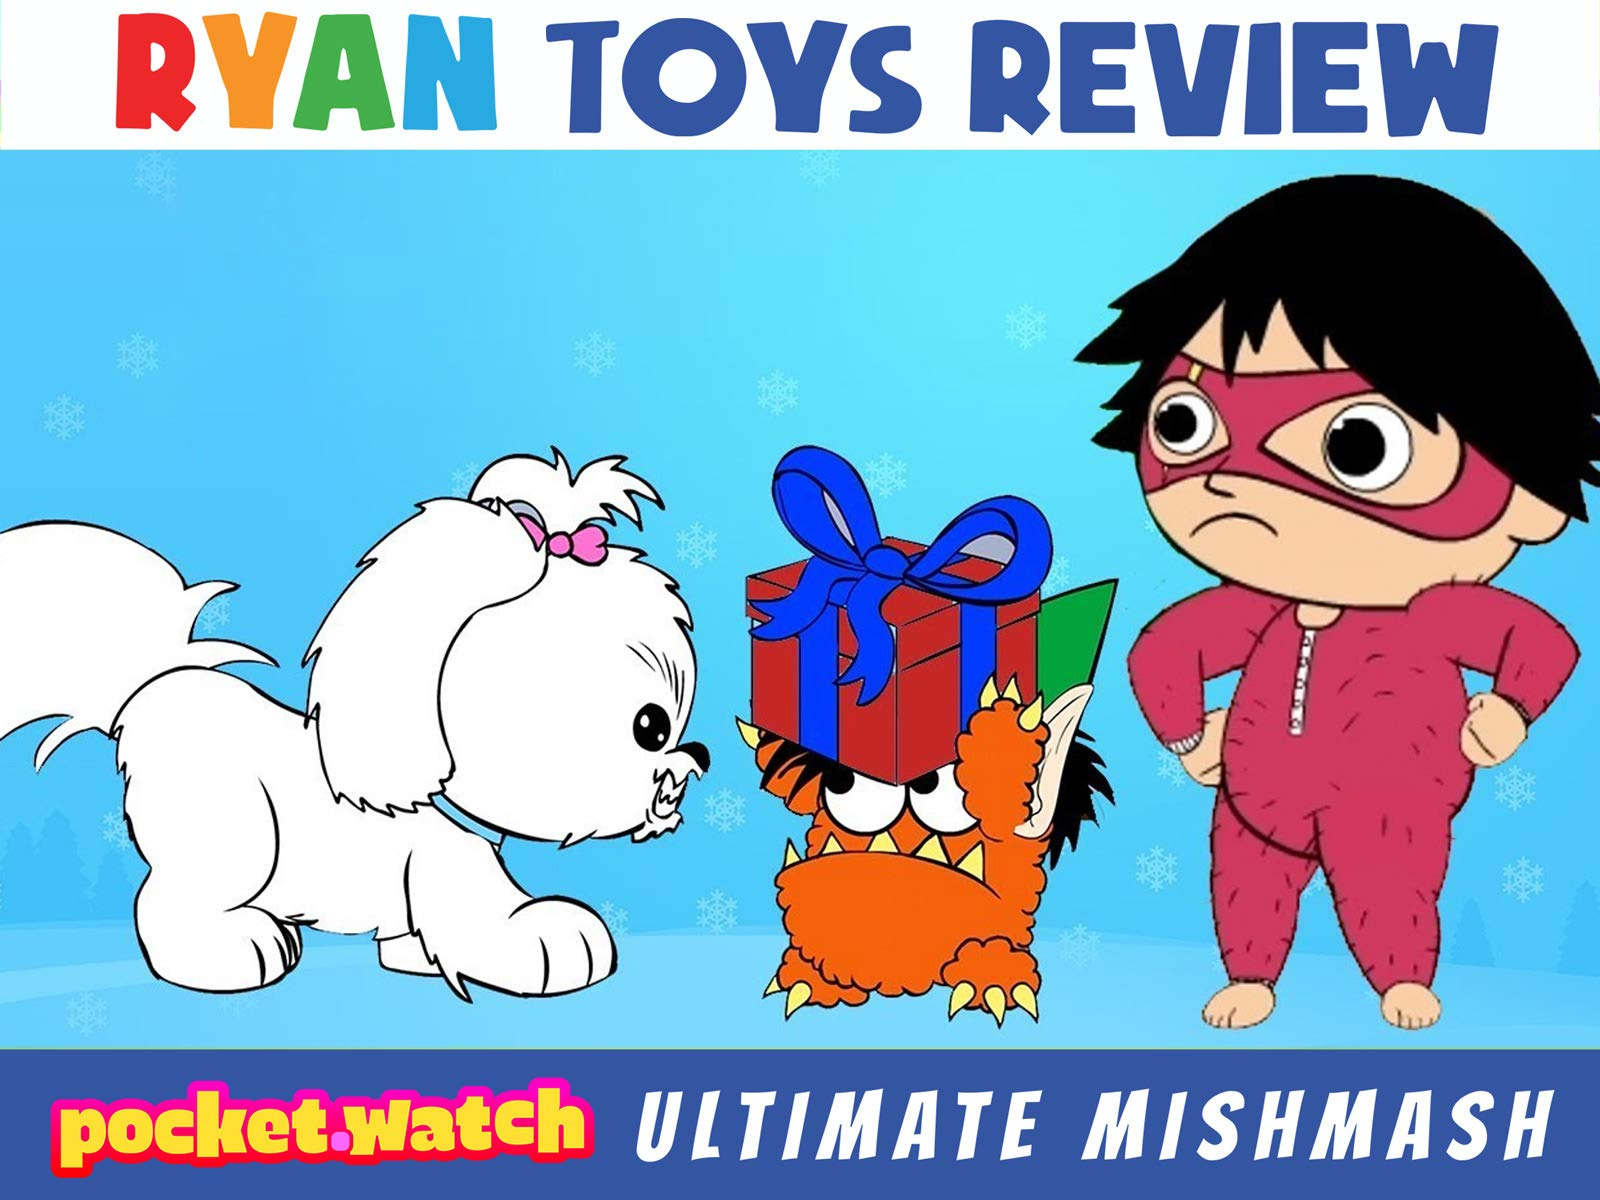 Amazon.com: pocket.watch Ryan Toys Review Ultimate mishmash ...